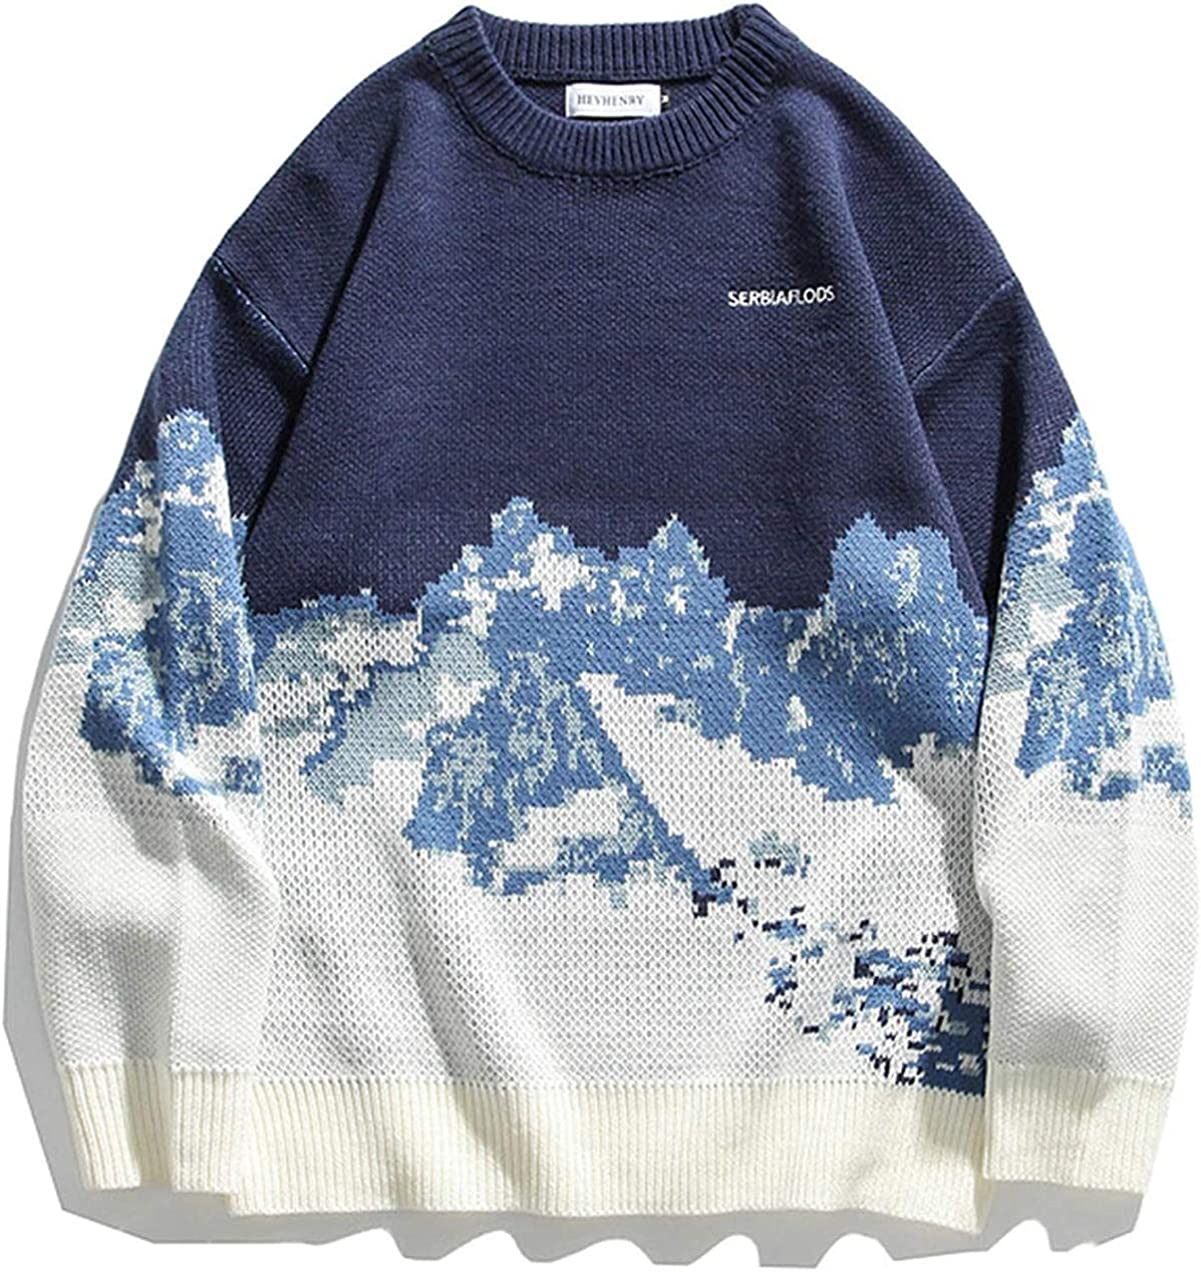 Mens Knit Columbus Mall Max 69% OFF Sweaters Streetwear Winter Unisex Patch Couple Vintage